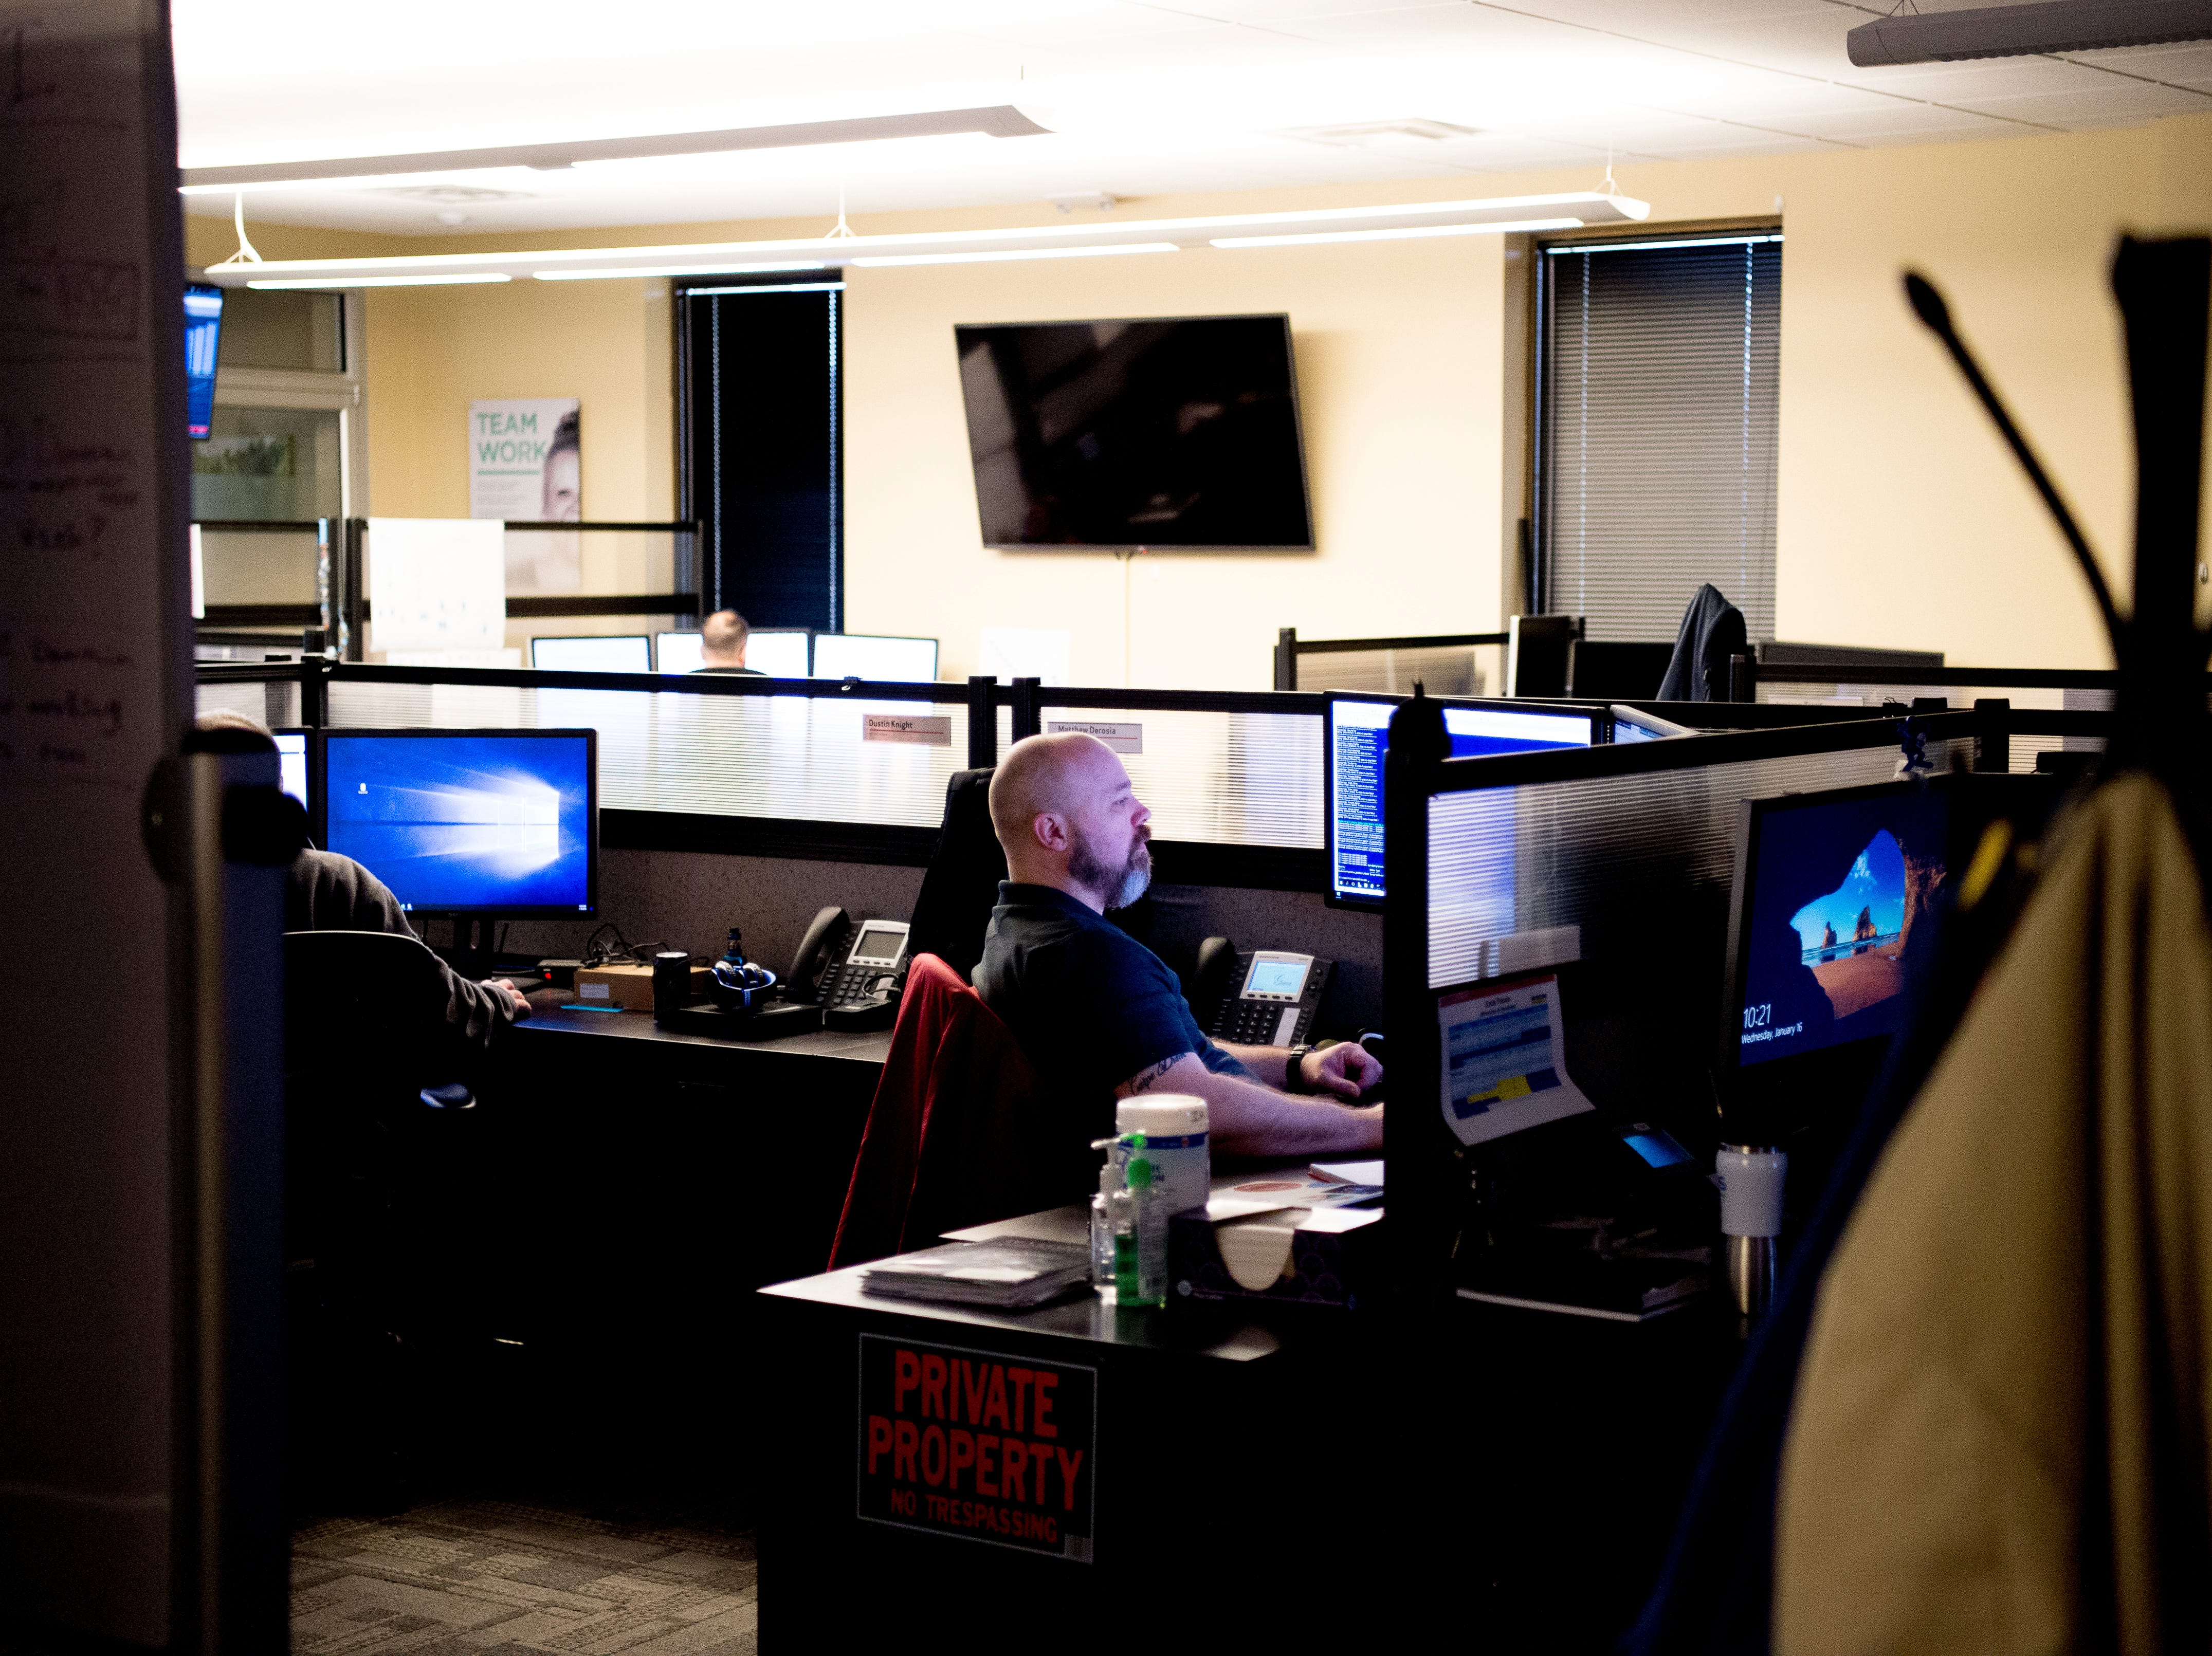 An employee works at their desk in the technology information management floor at the Cellular Sales headquarters on 9040 Executive Park Drive in West Knoxville, Tennessee on Wednesday, January 16, 2019. An authorized agent of Verizon Wireless, Cellular Sales specializes in retail and support for over 700 of Verizon stores in 42 states.